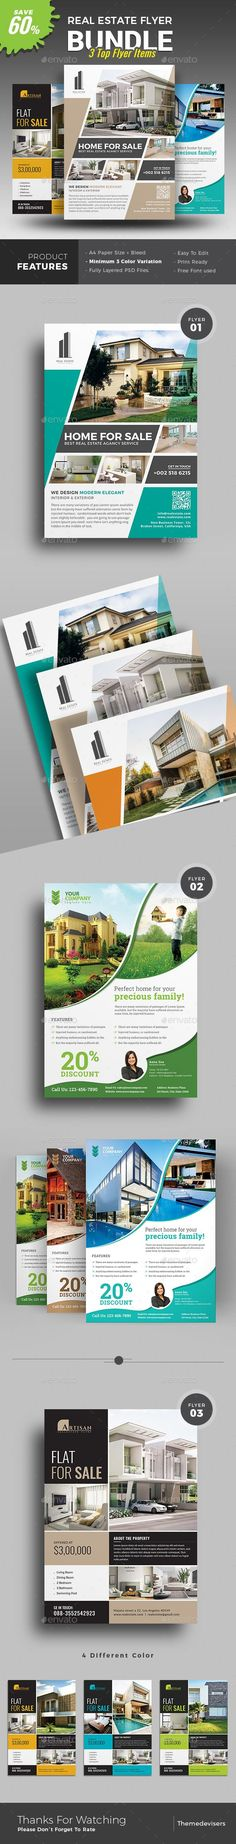 Real Estate Flyer | You can use it for real estate listings, interior business, advertising homes or property for sale or houses for rent. Fully editable templates, you can add images of your choice and change the texts